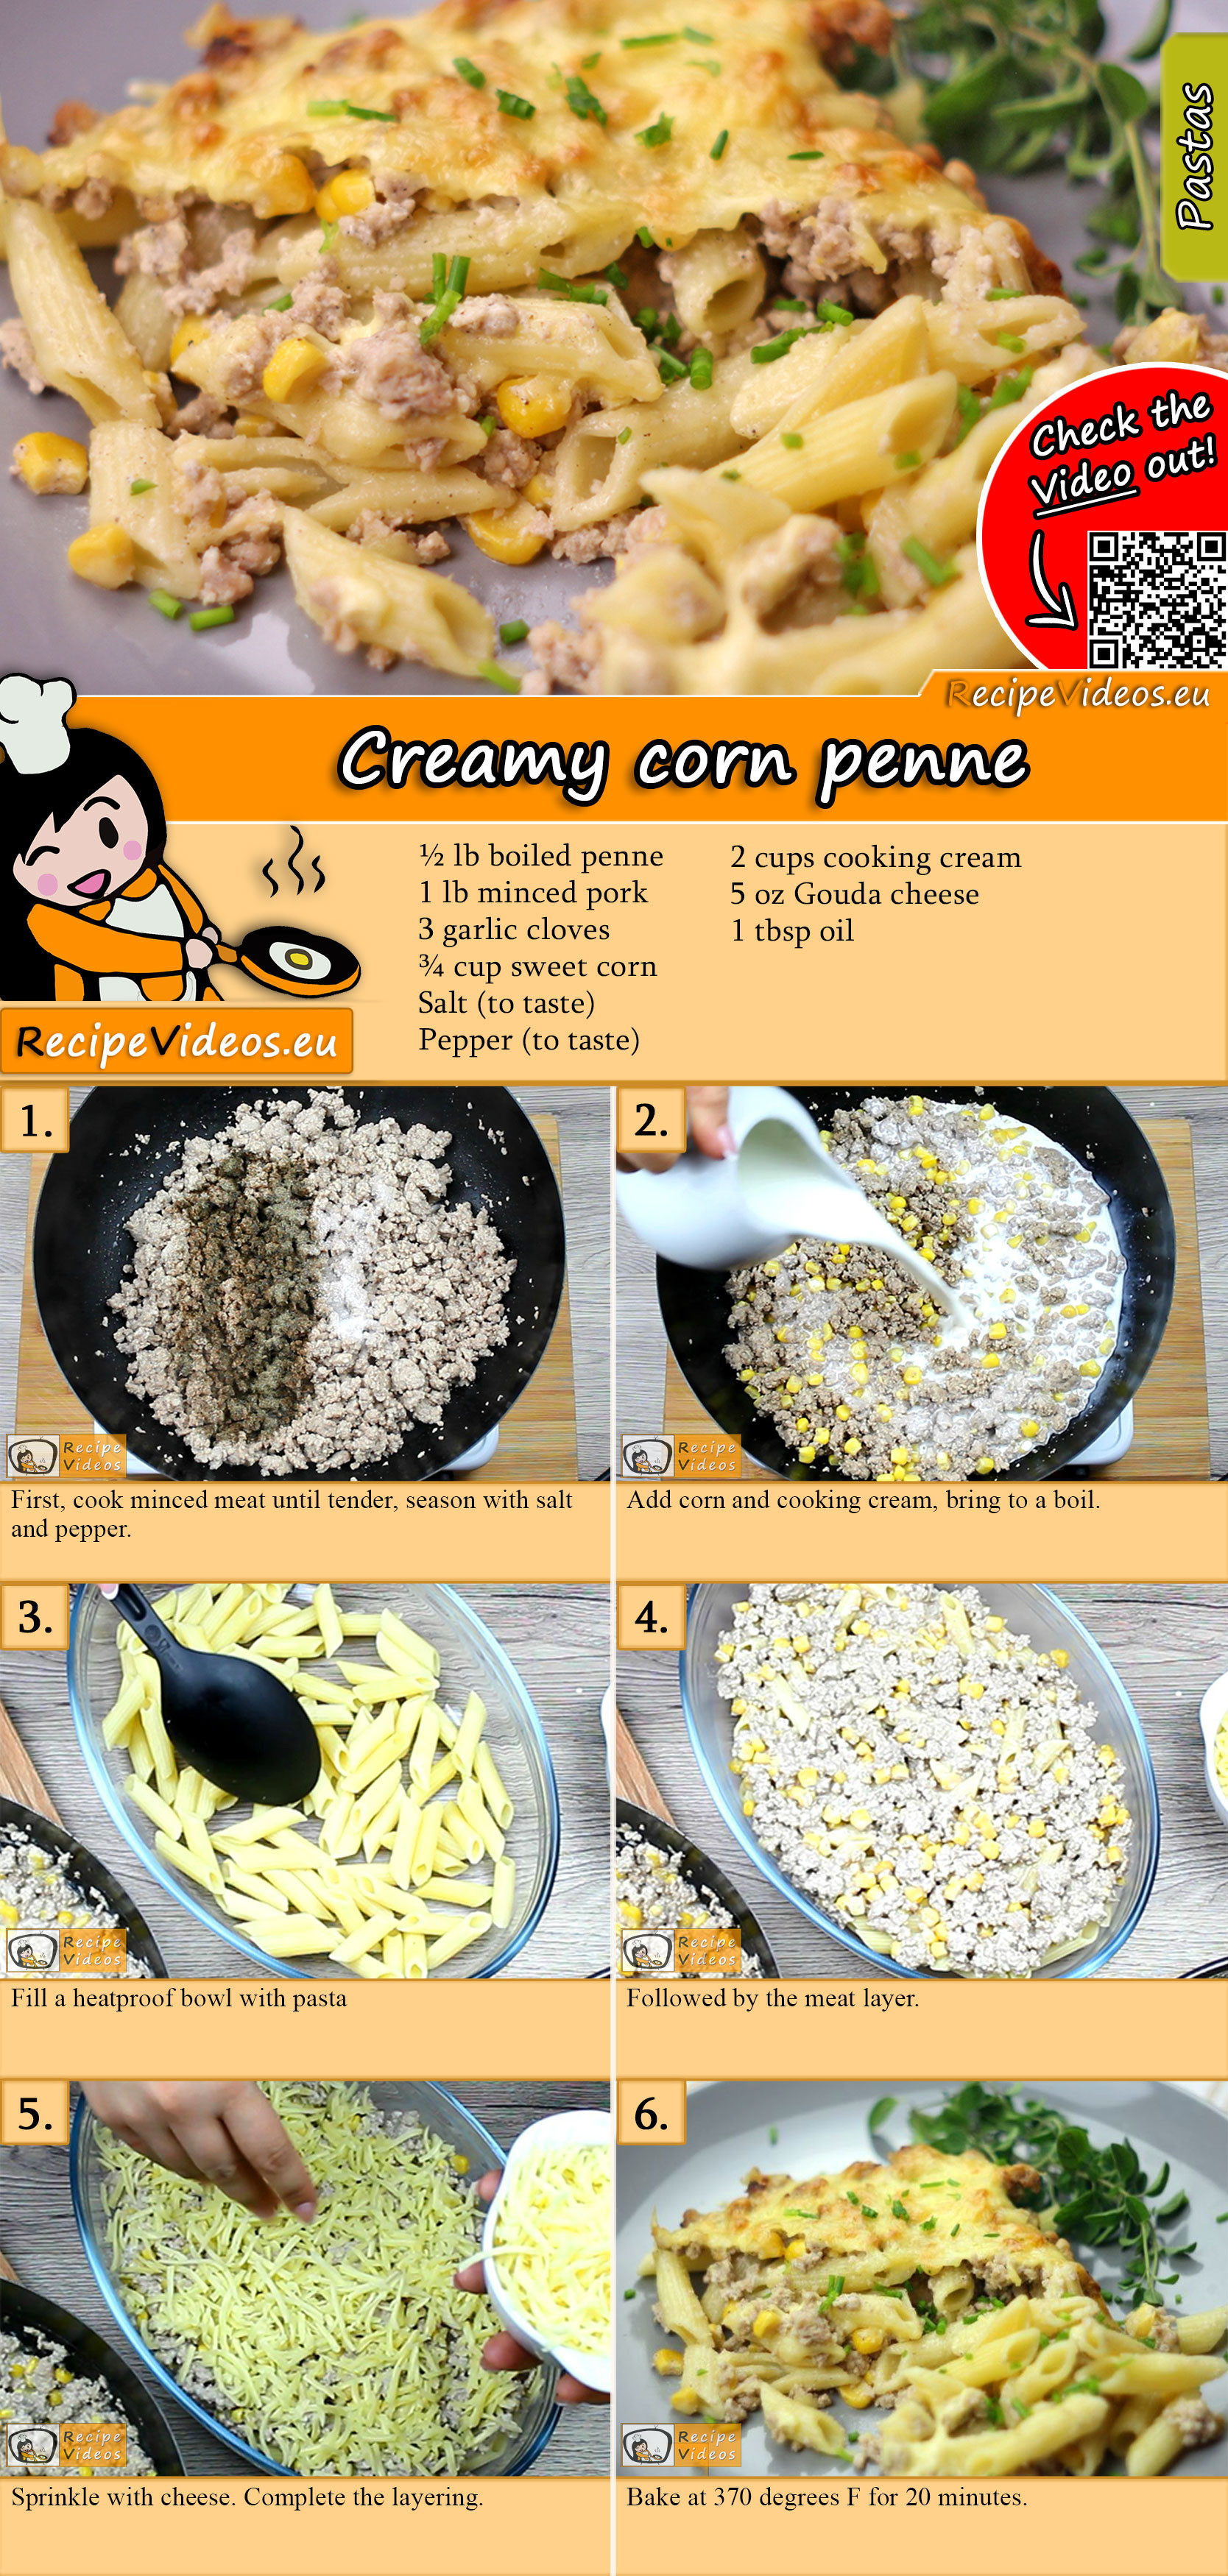 Creamy corn penne recipe with video